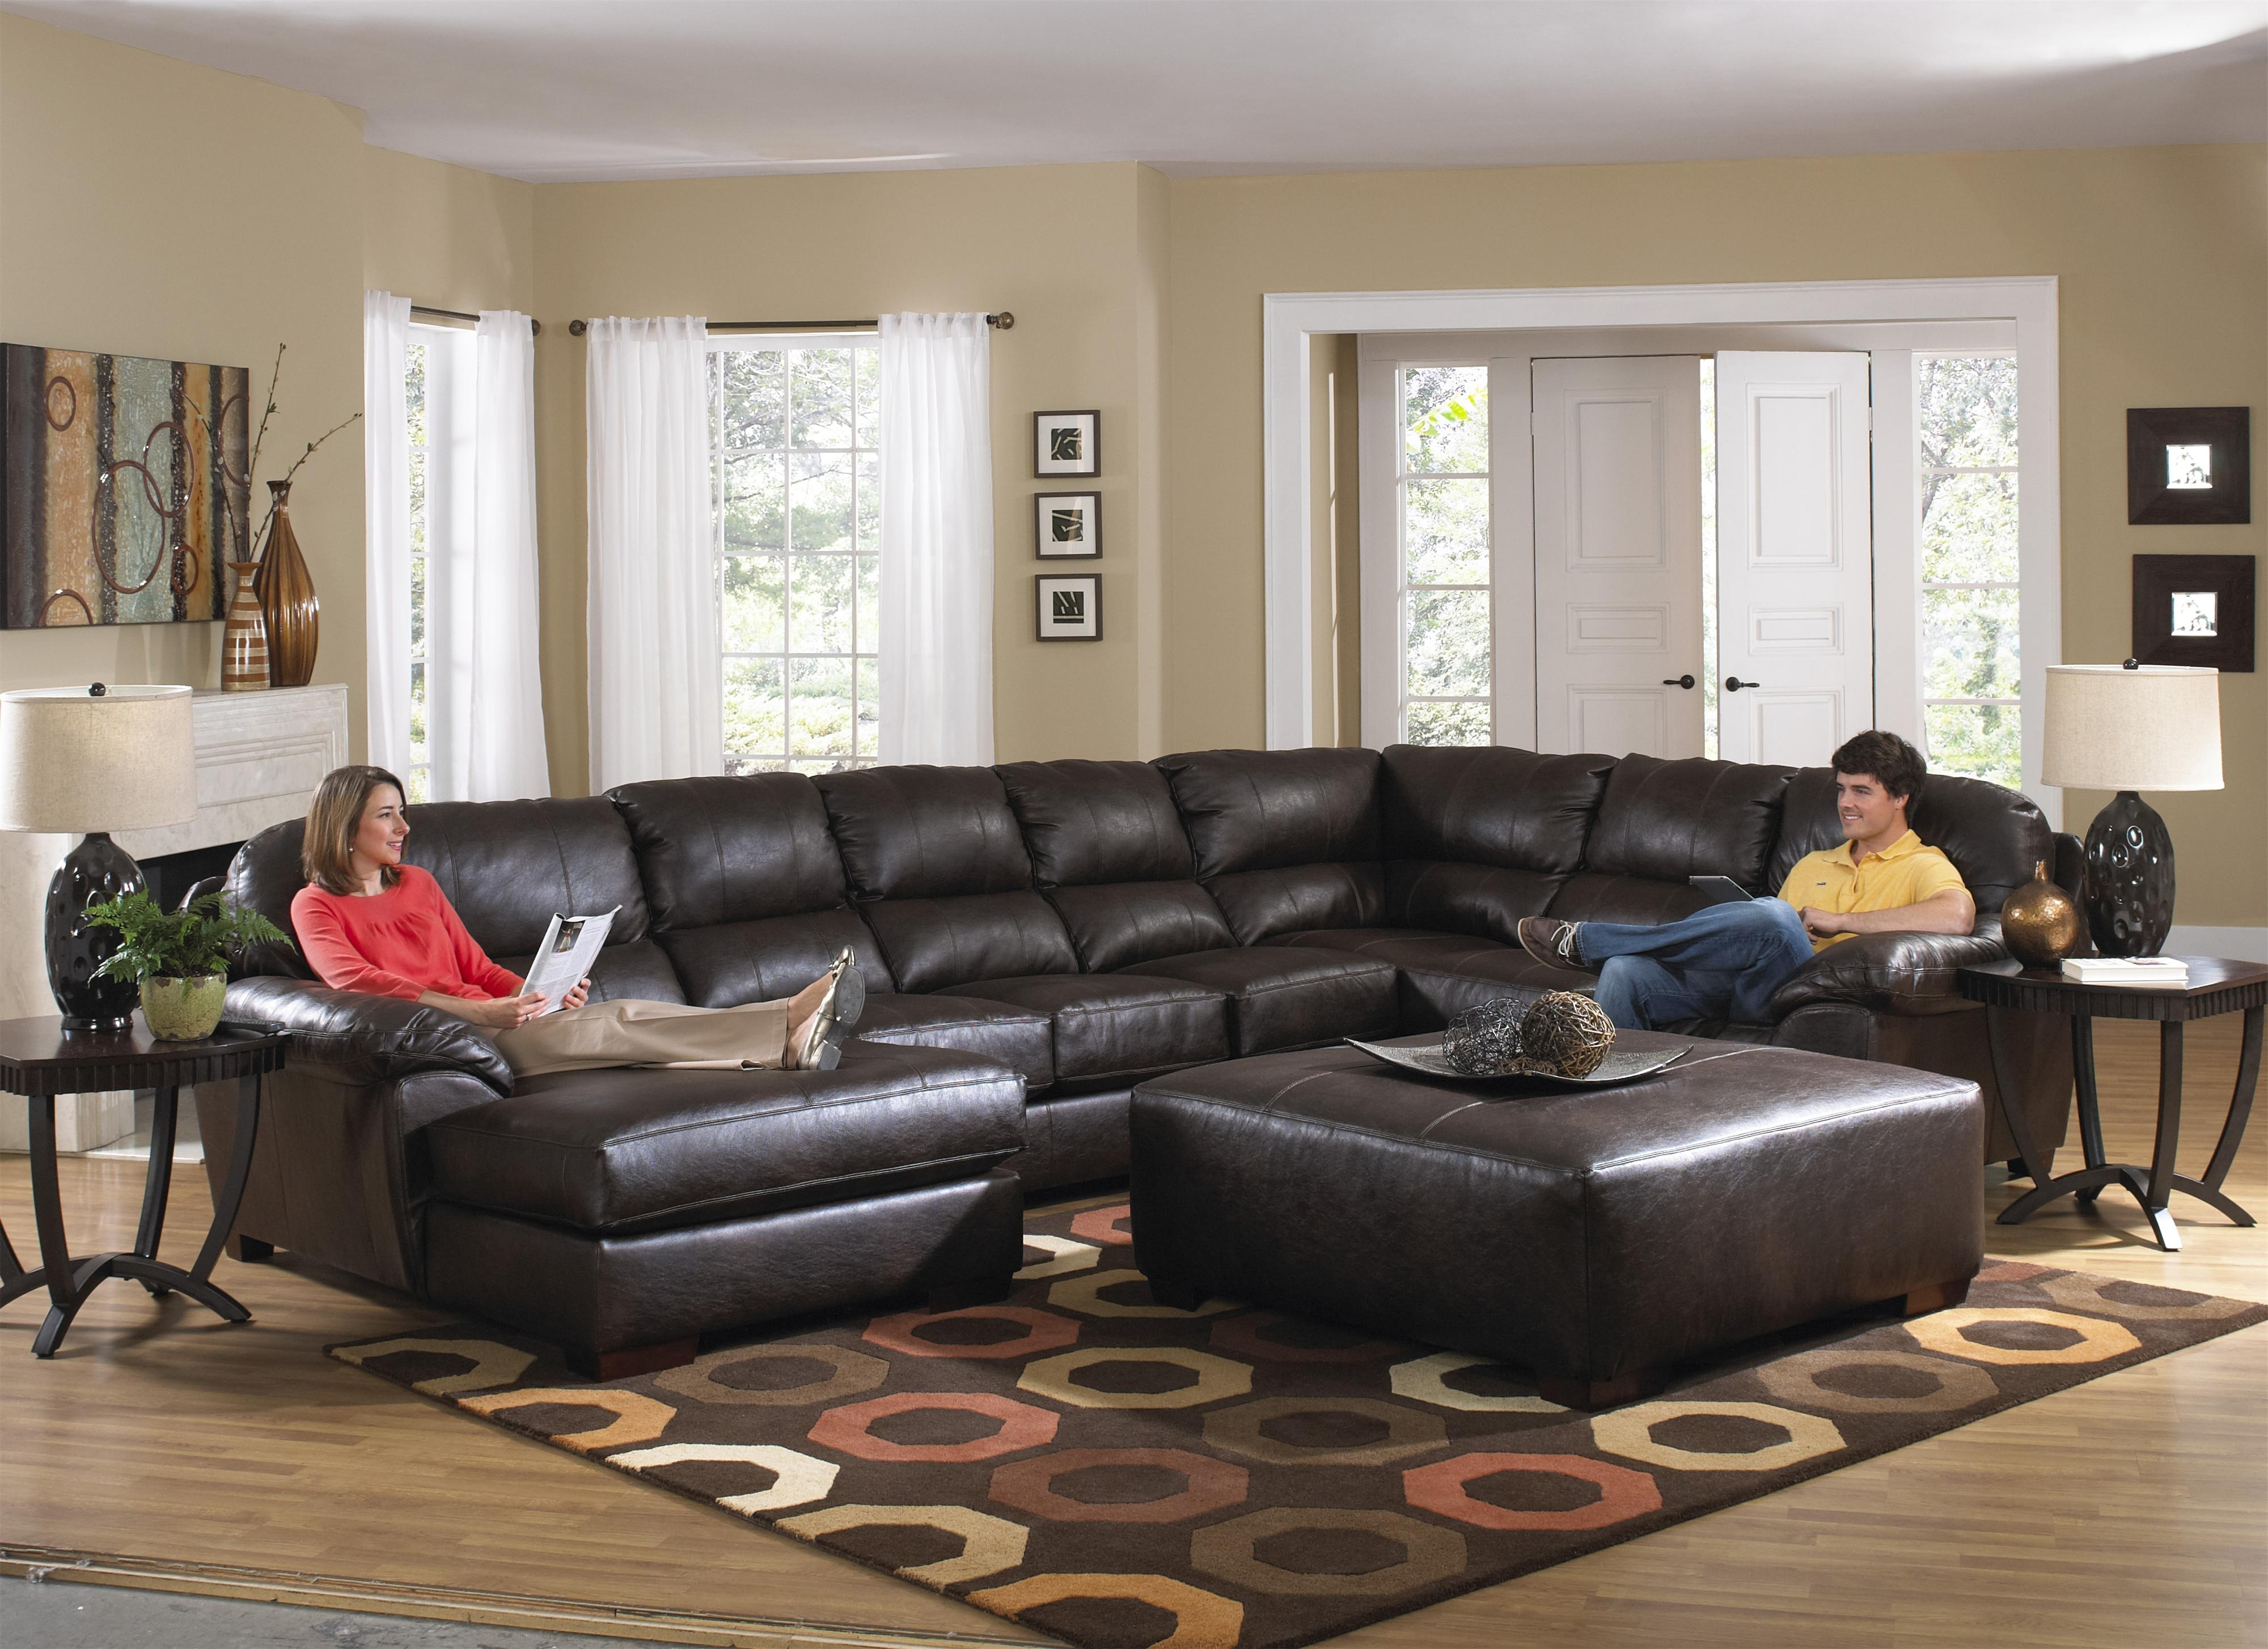 Most Current Extra Large Sectional Sofas With Chaise With Regard To Extra Large Sectional Sofas – Visionexchange (View 11 of 15)